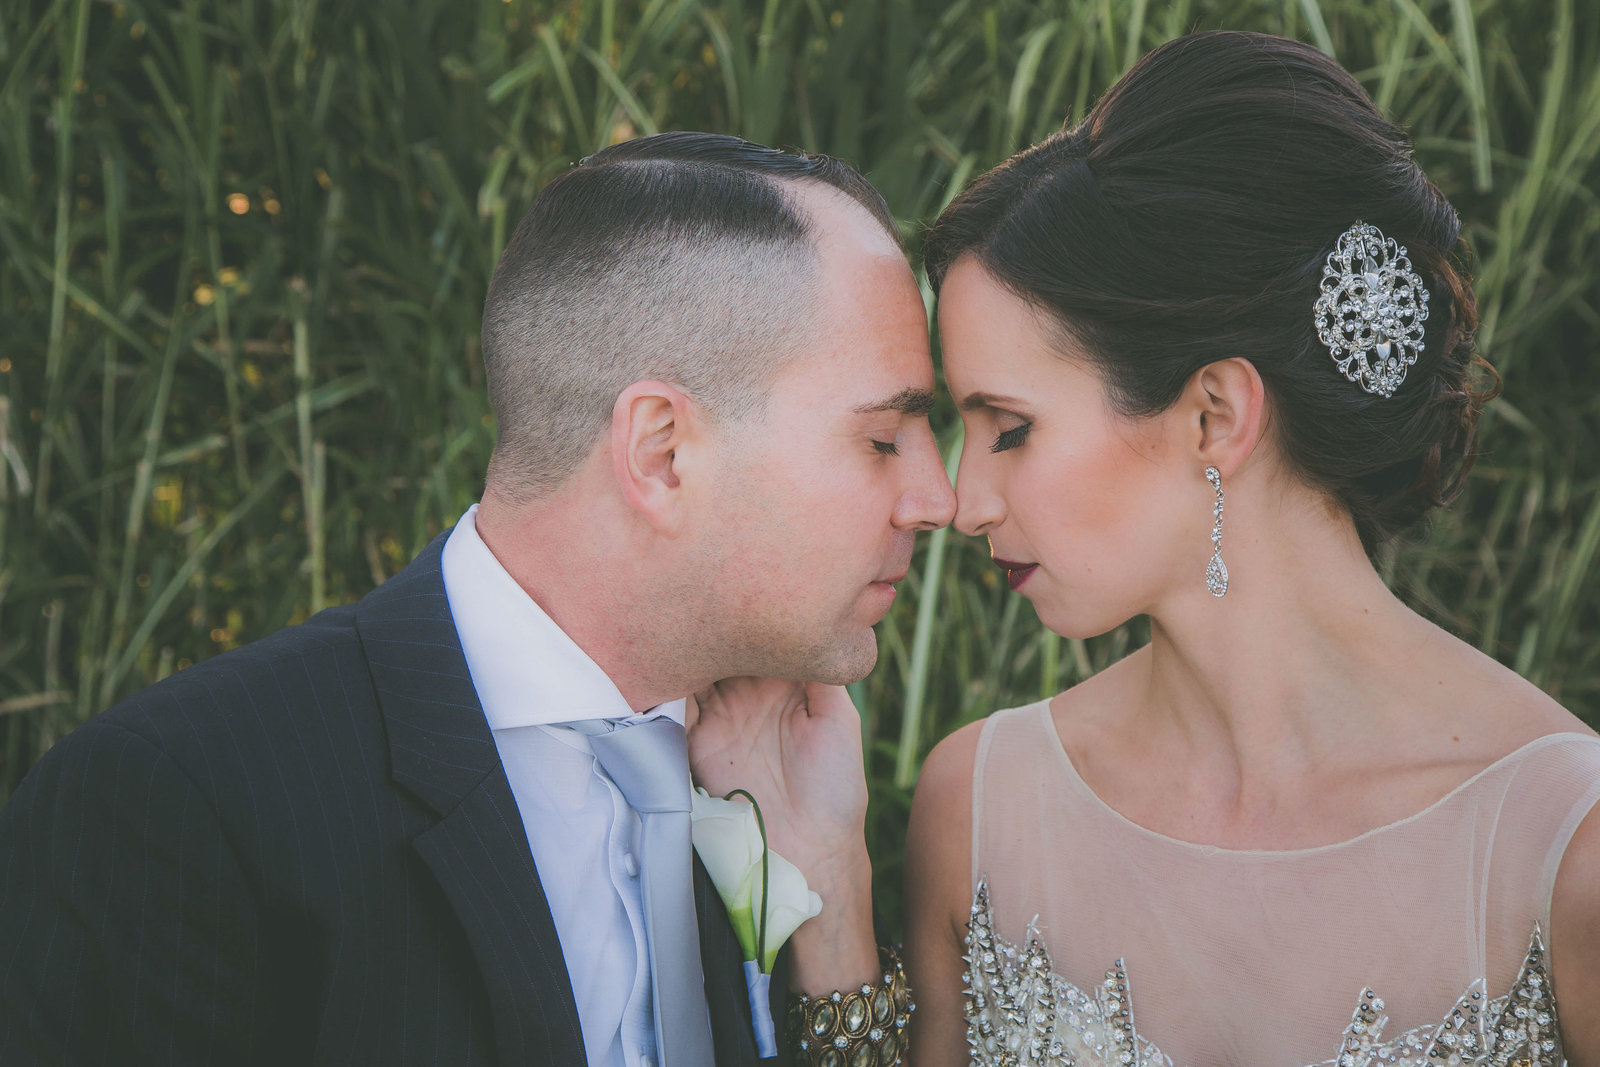 East Coast bride and groom go forehead to forehead against tall grass.